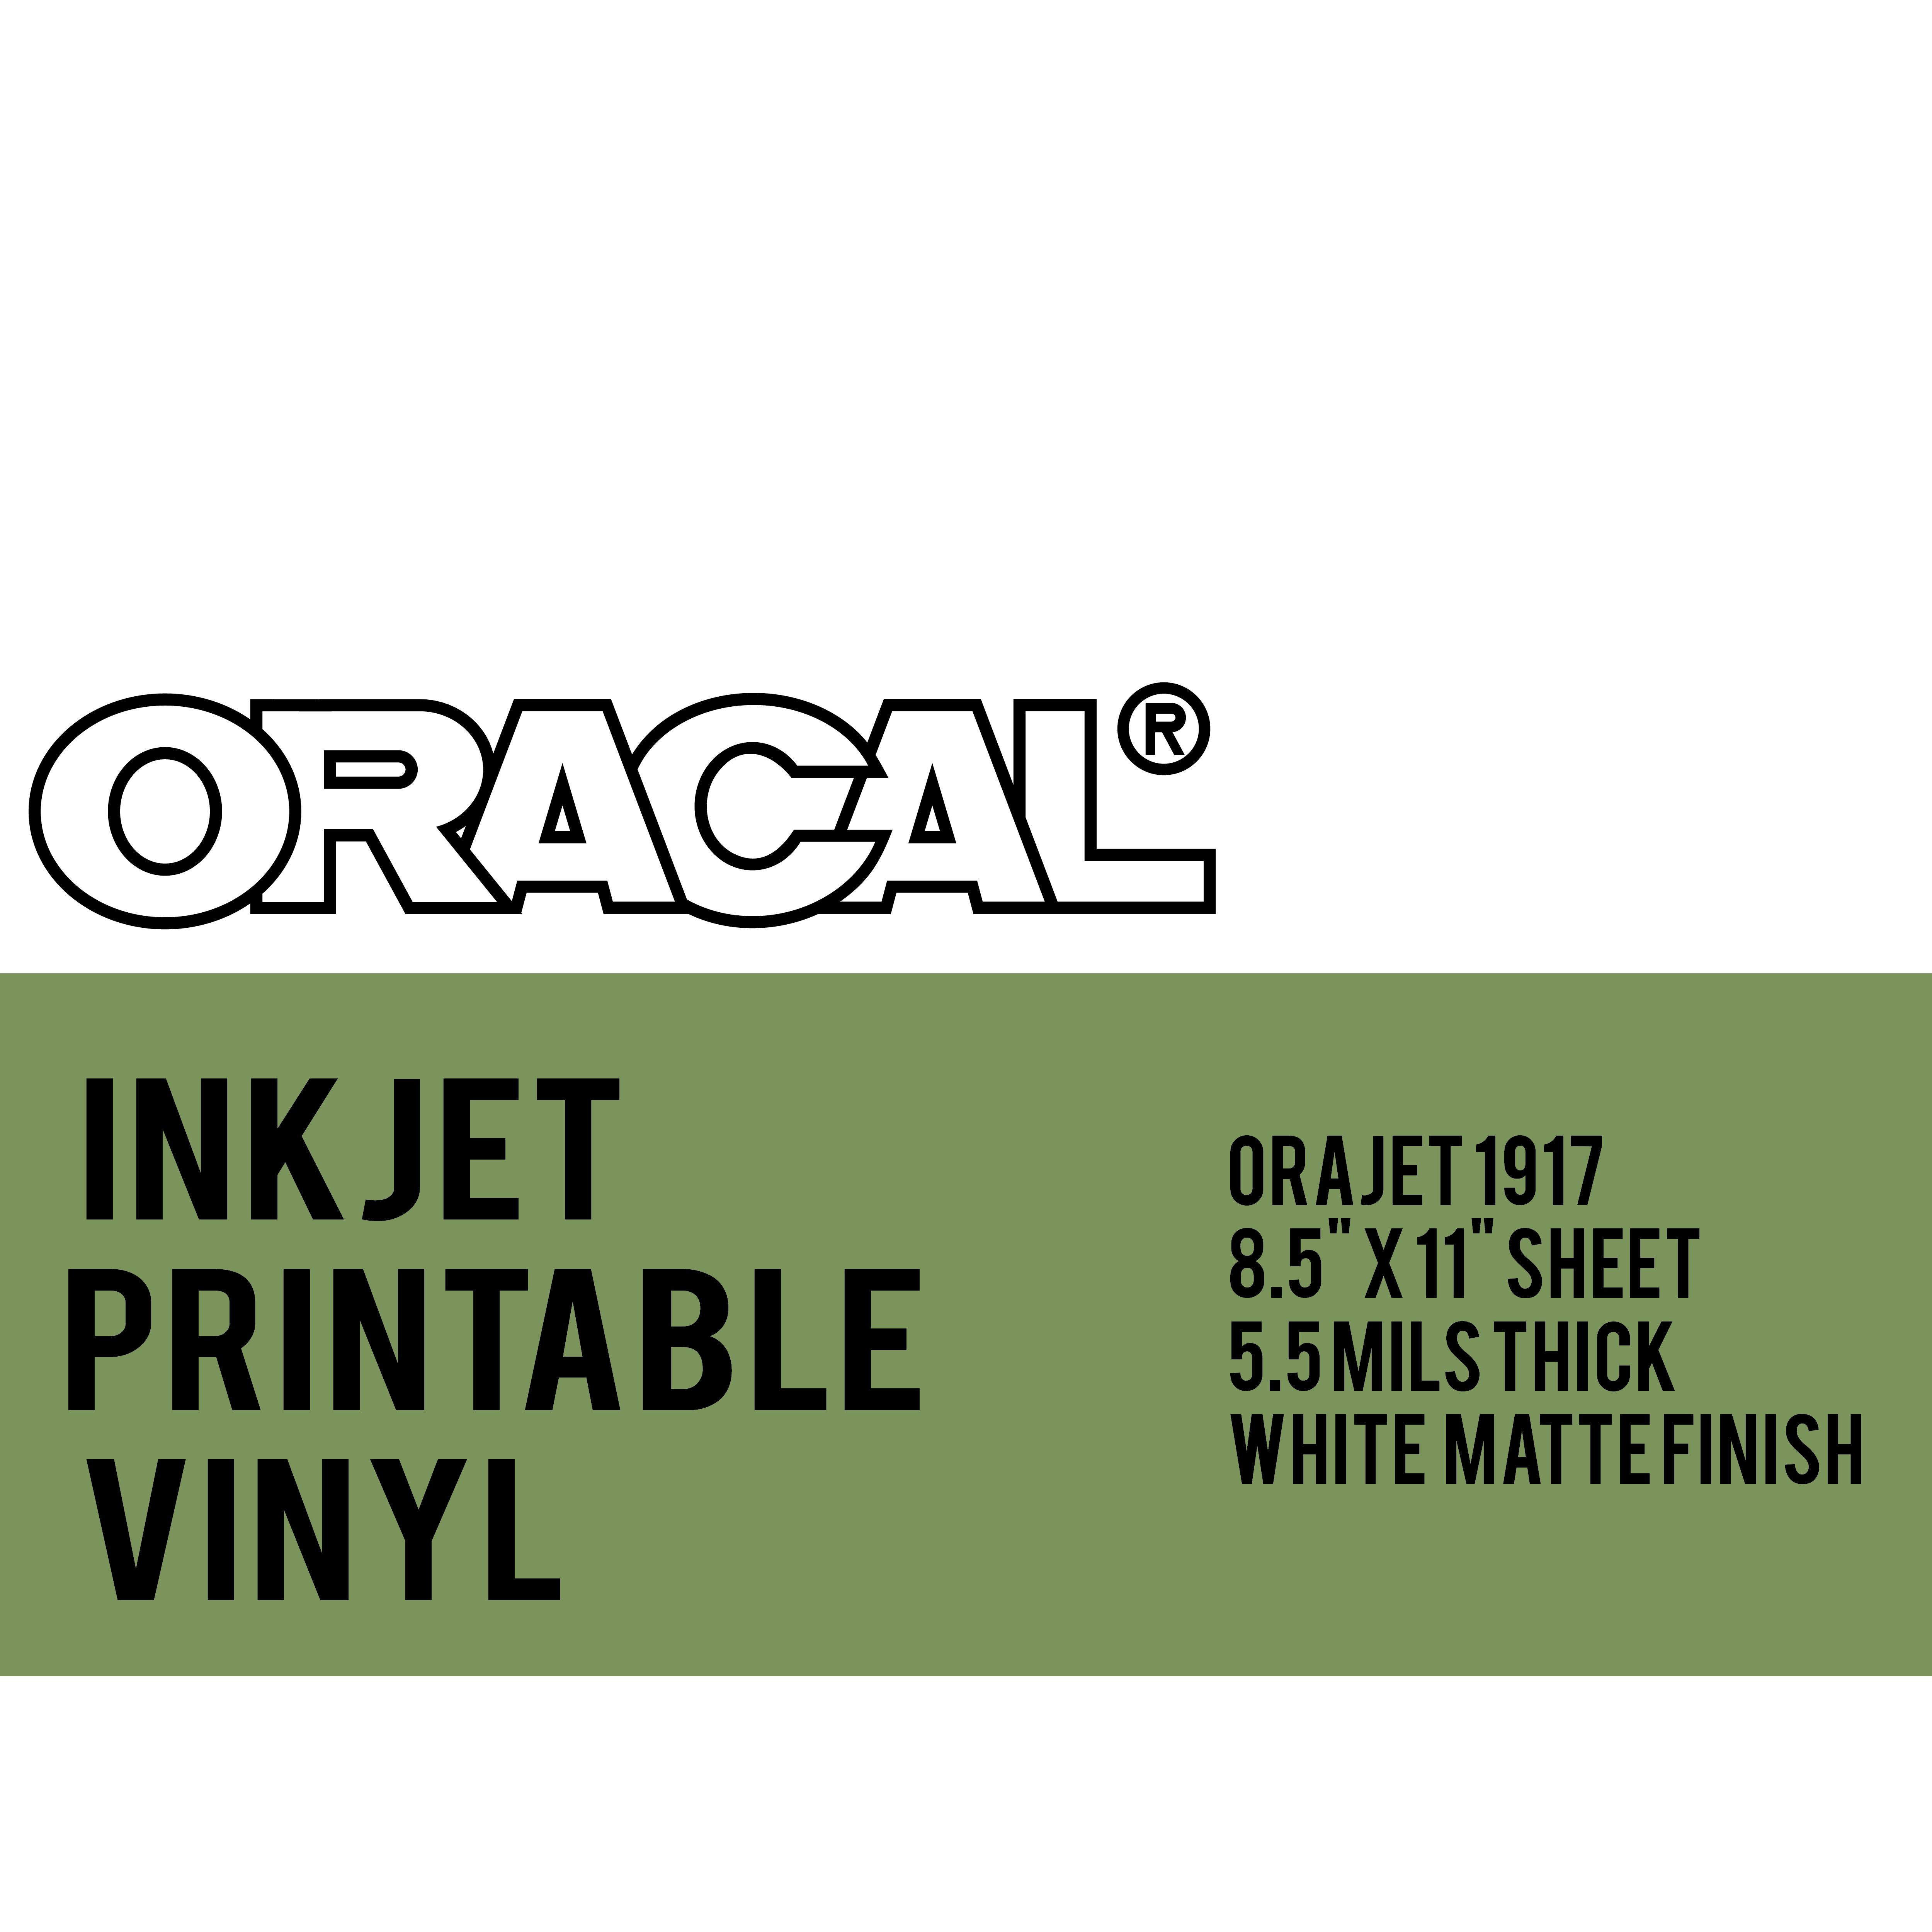 graphic regarding Oracal Inkjet Printable Vinyl titled Oracal Inkjet Printable Long-lasting adhesive Vinyl As a result of The 8.5 x 11 inch Sheet